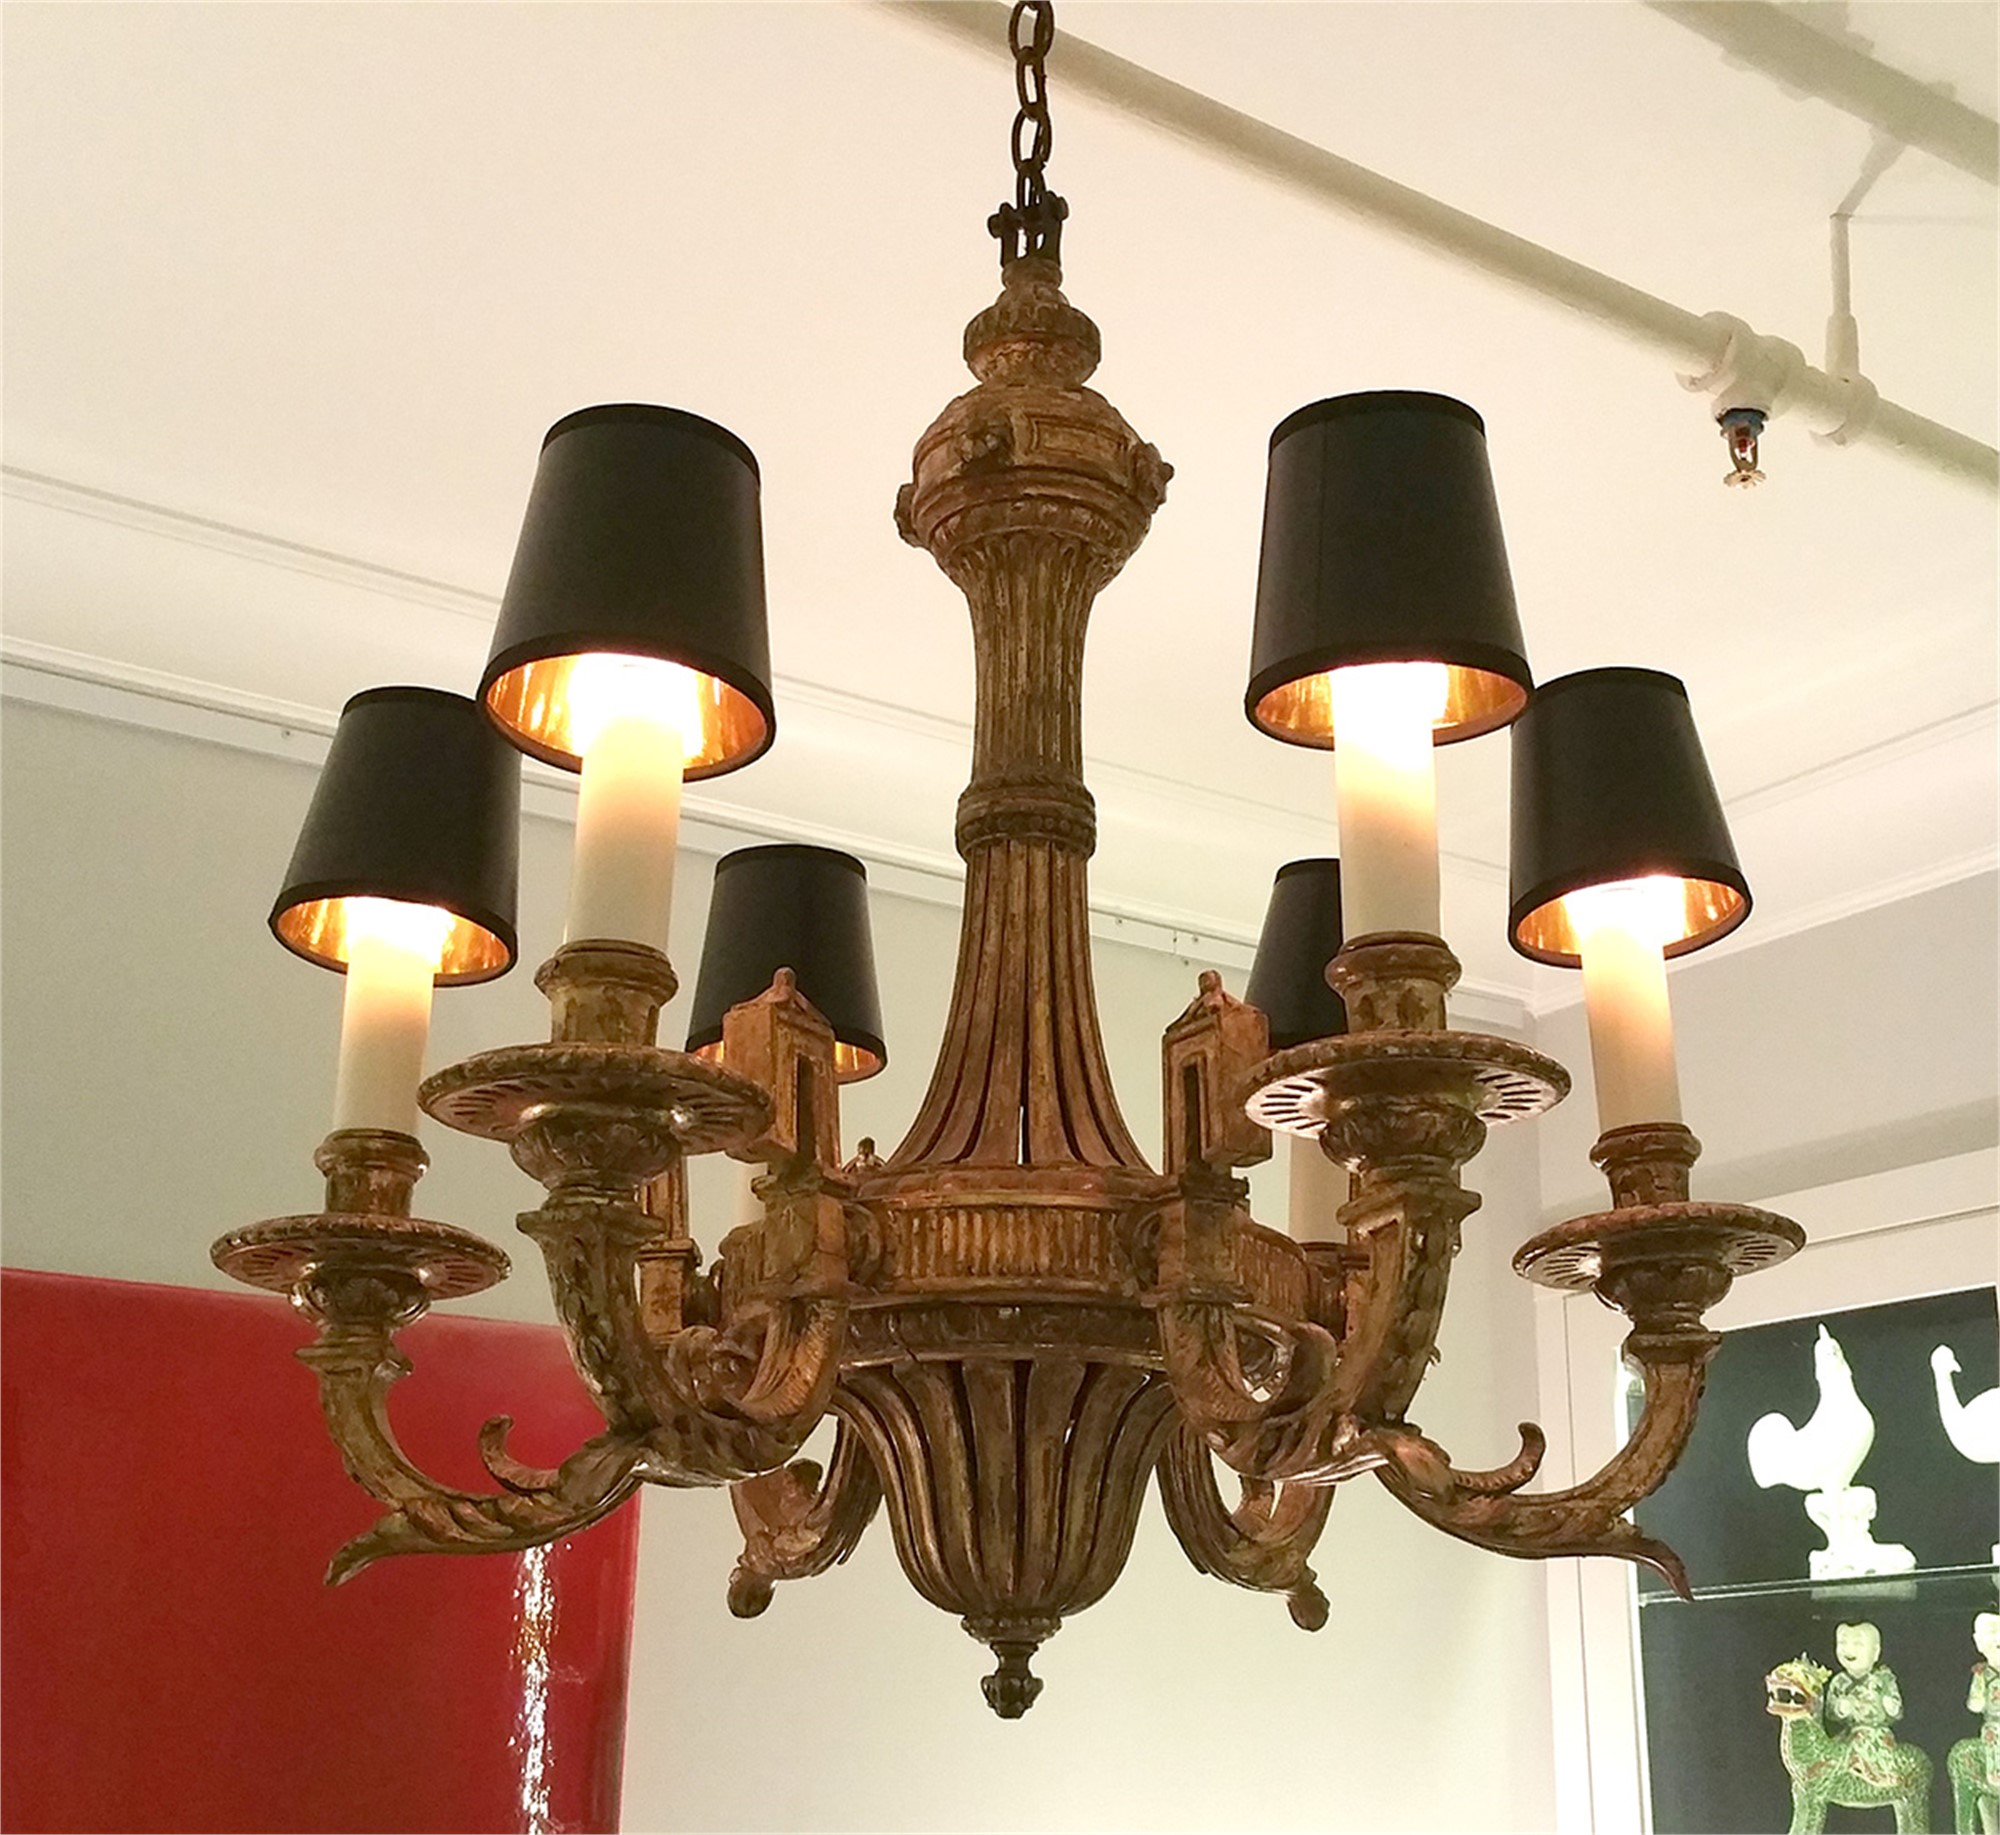 LOUIS XVI STYLE GILTWOOD SIX-LIGHT CHANDELIER